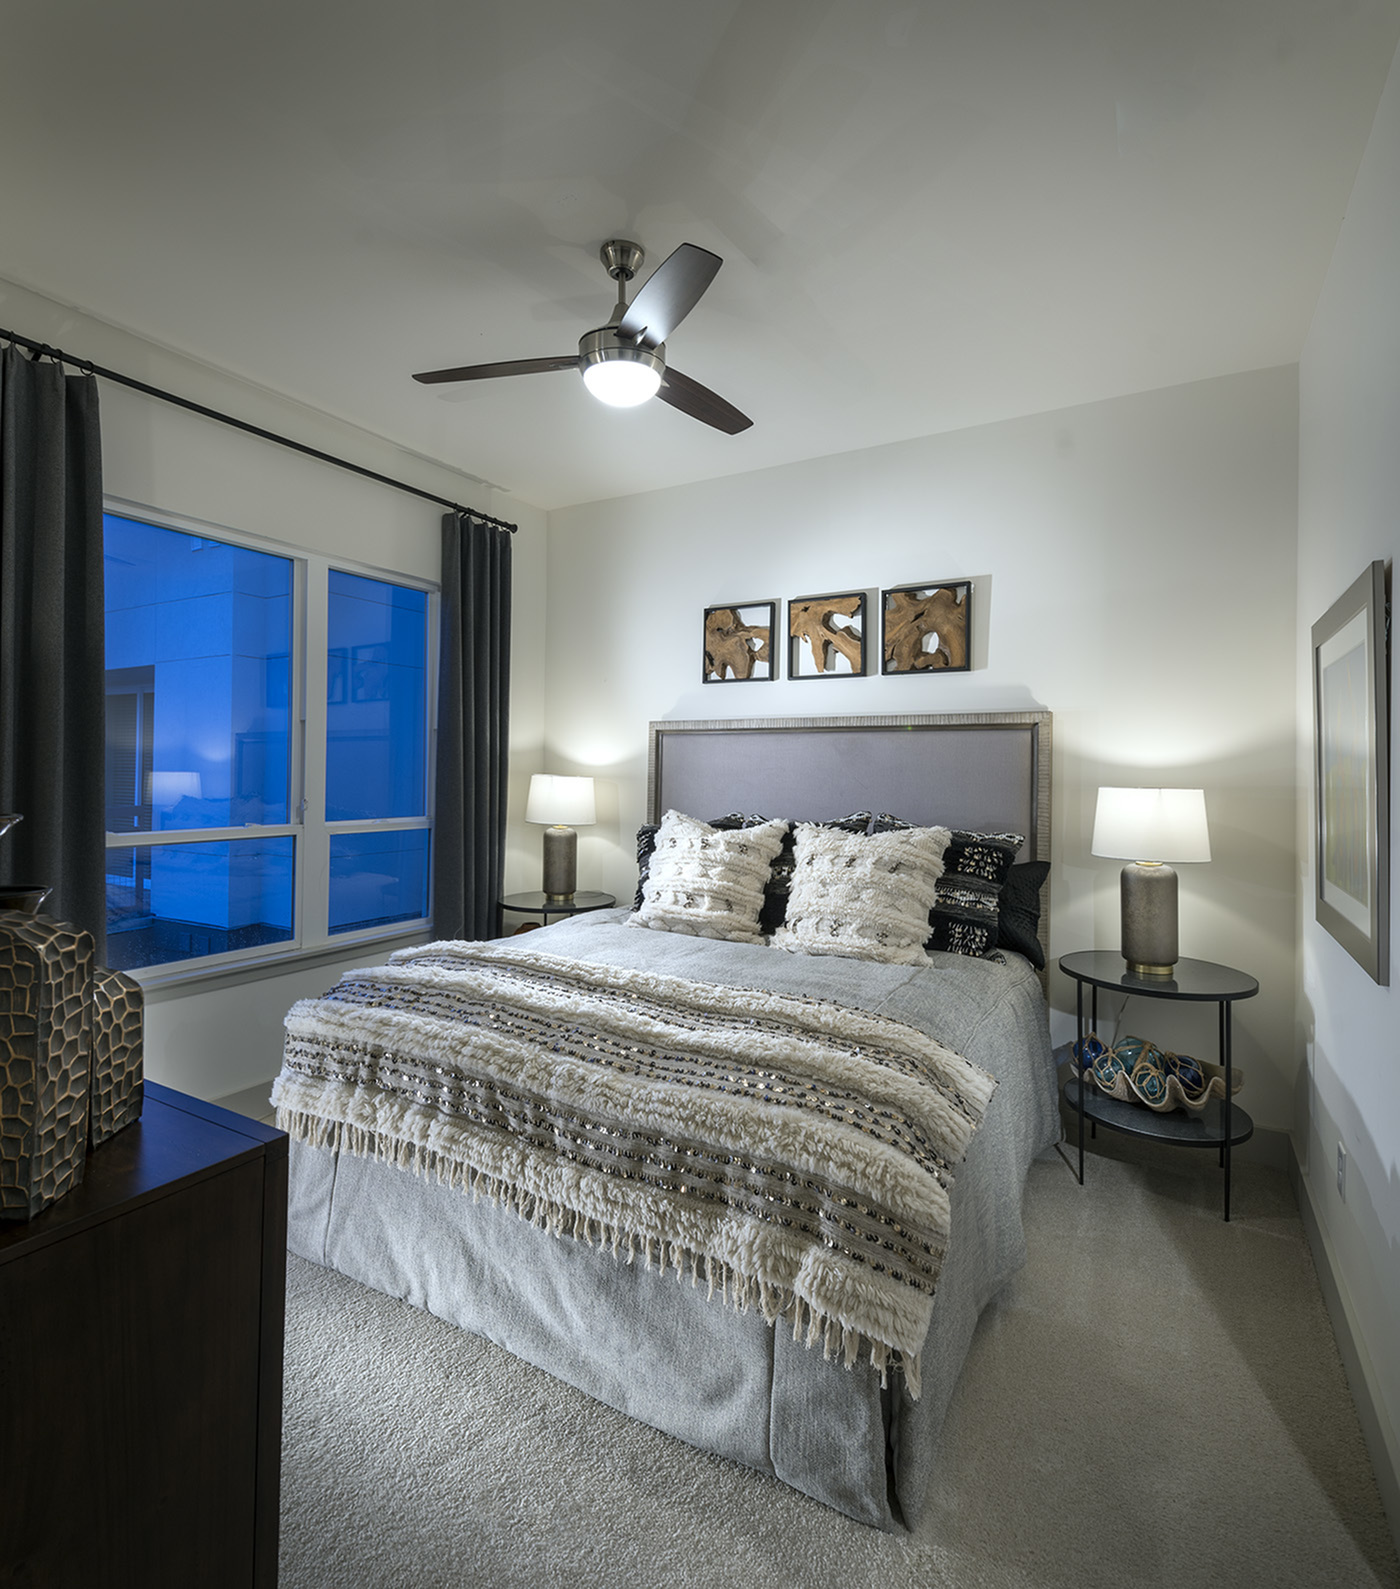 Image of Ample bedrooms that accommodate king-size beds for Hanover West Peachtree